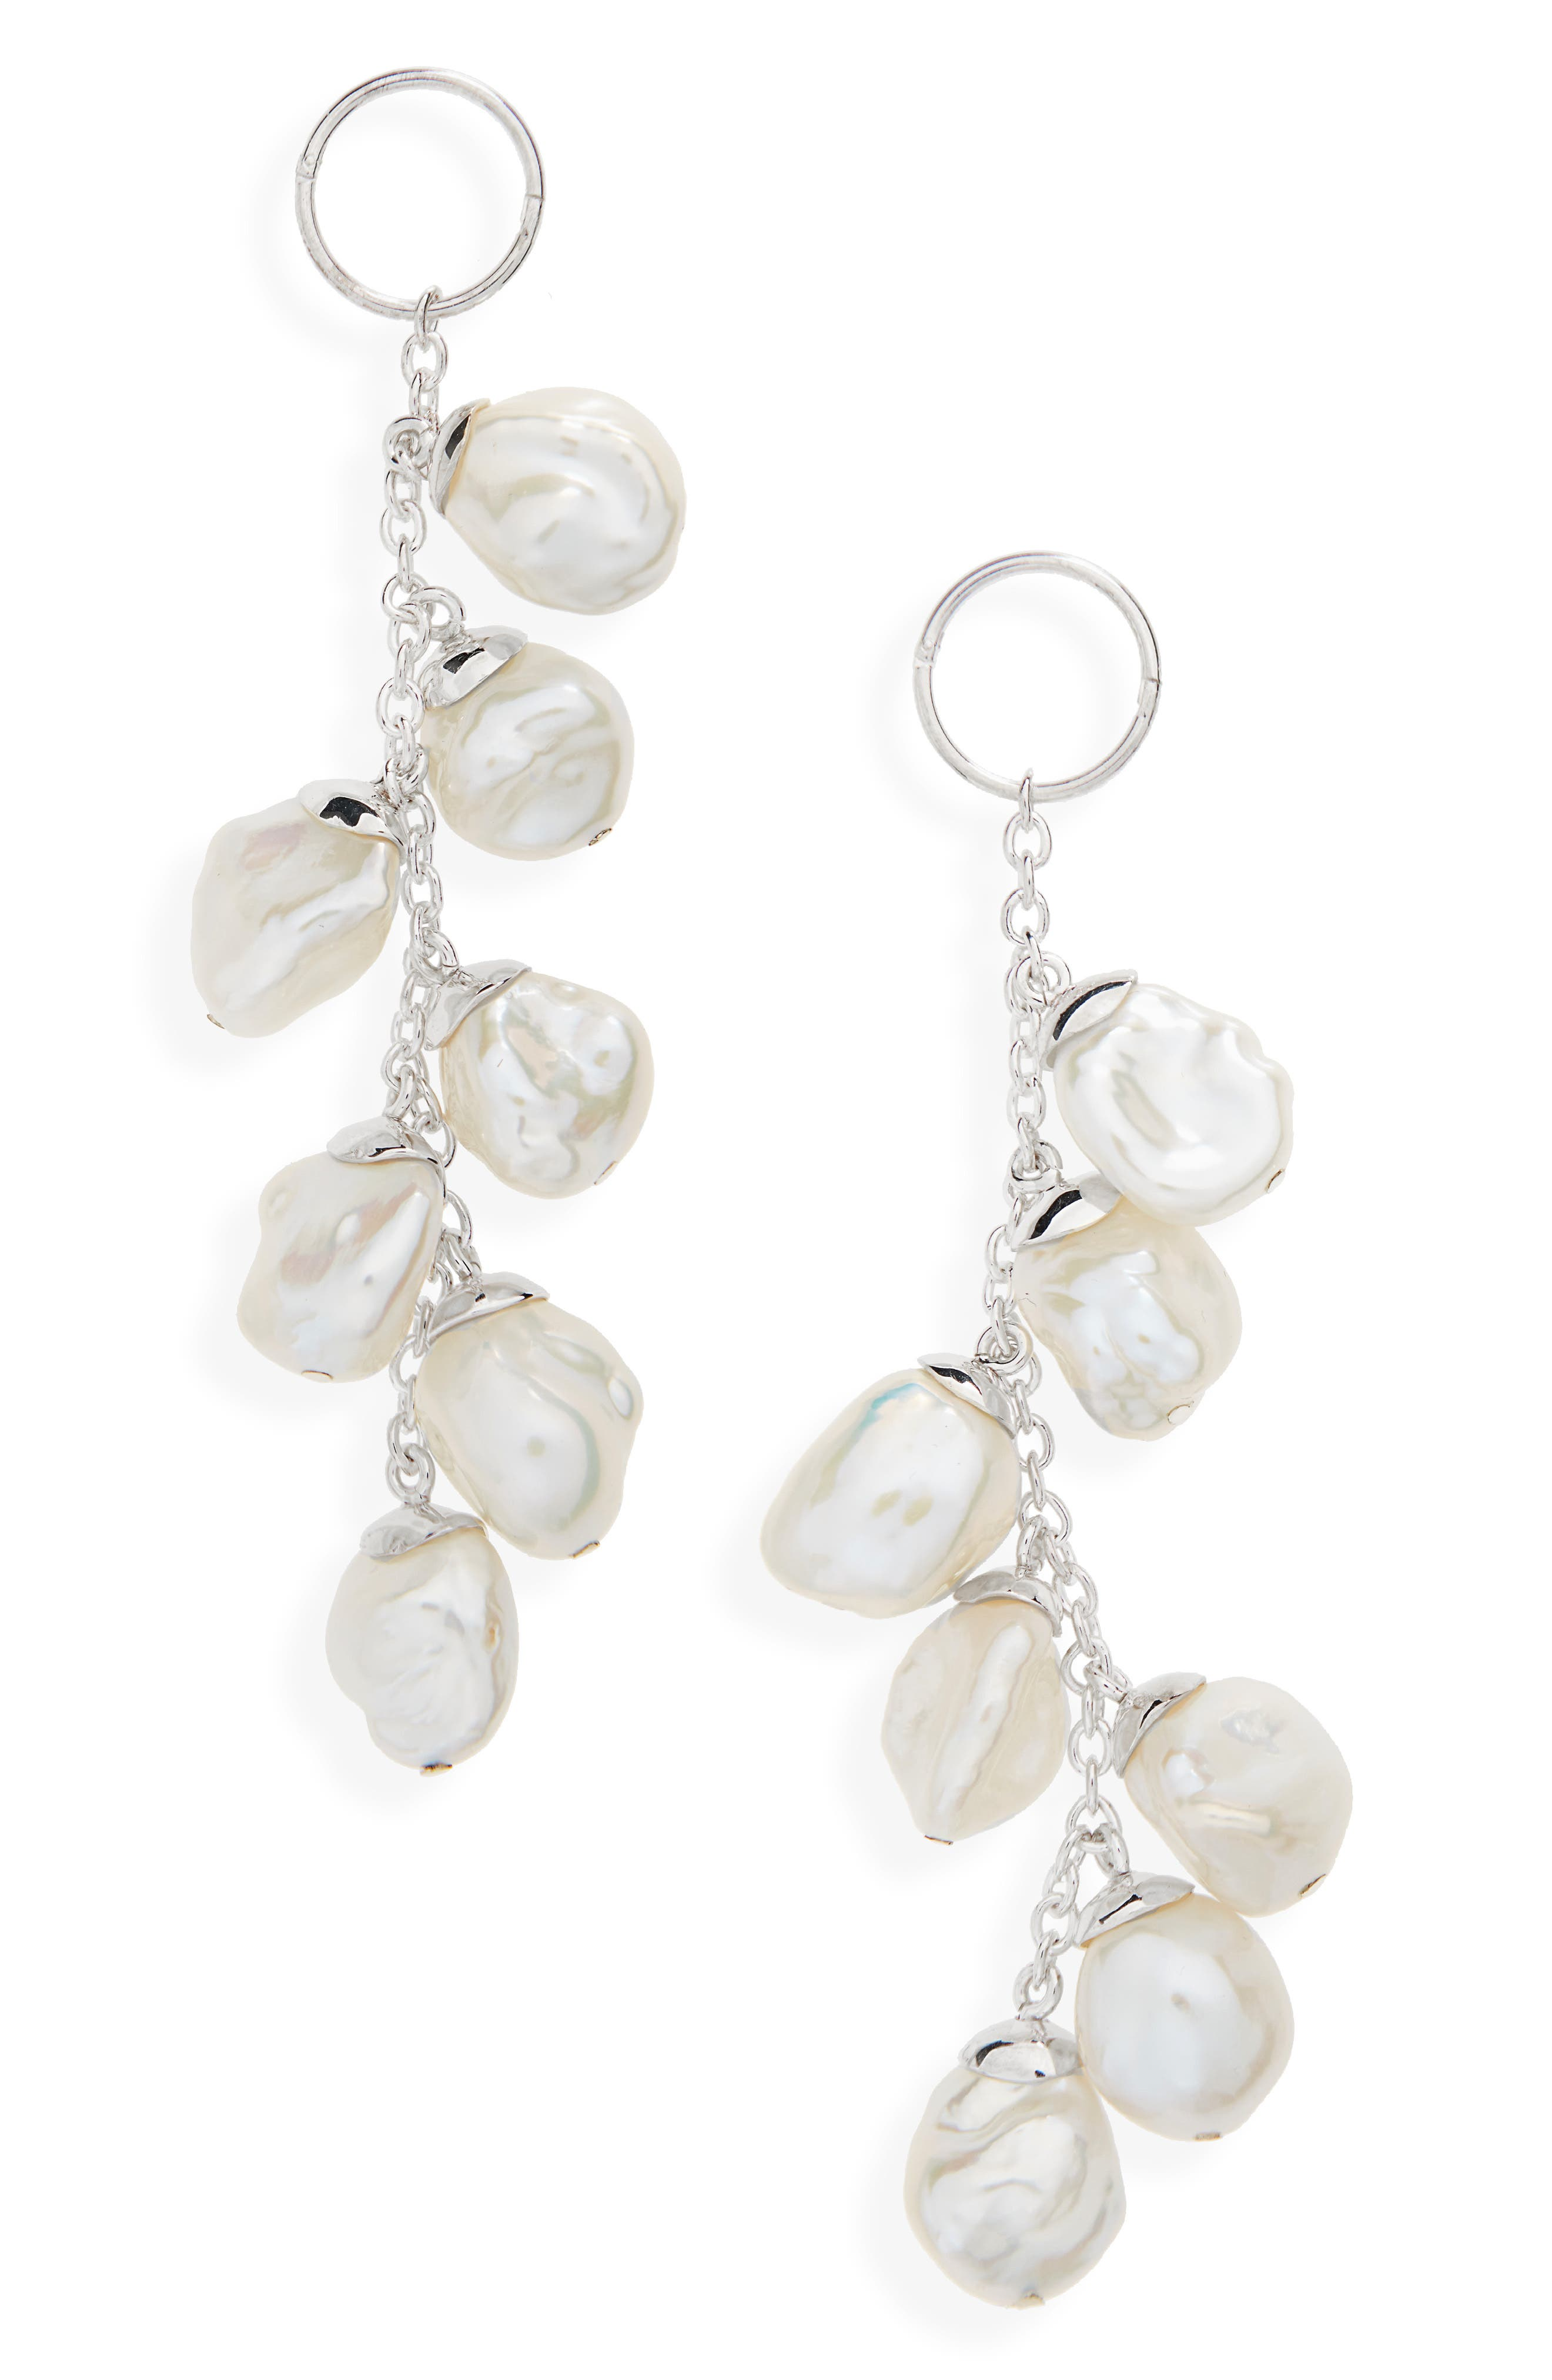 Baroque Cultured Freshwater Pearl Drop Earrings,                             Main thumbnail 1, color,                             Silver